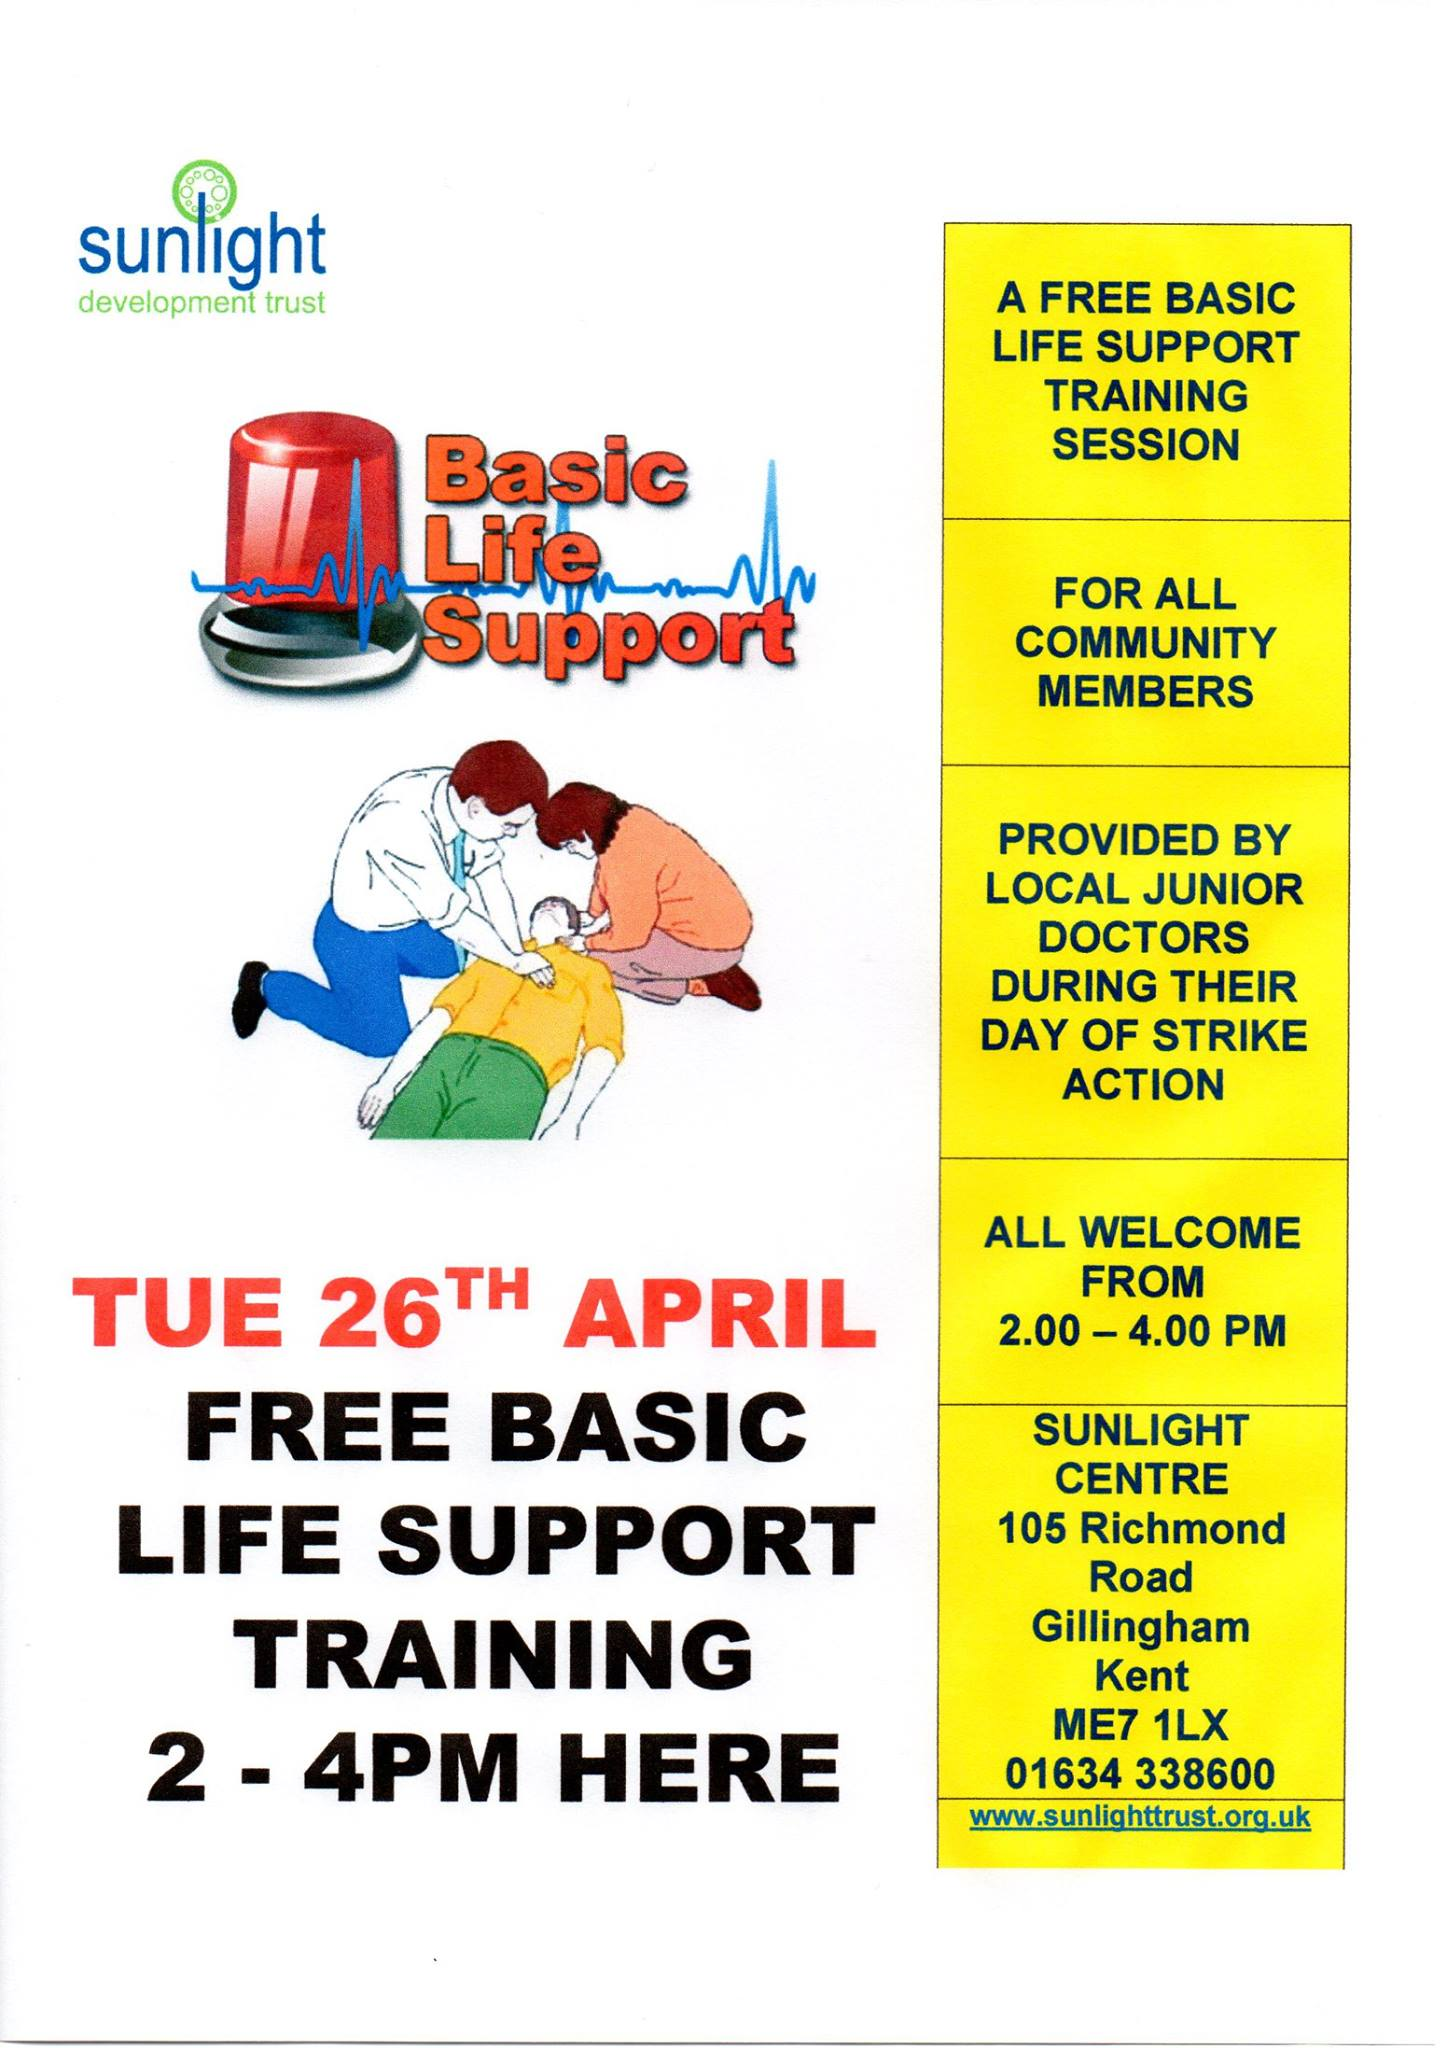 Free life support training